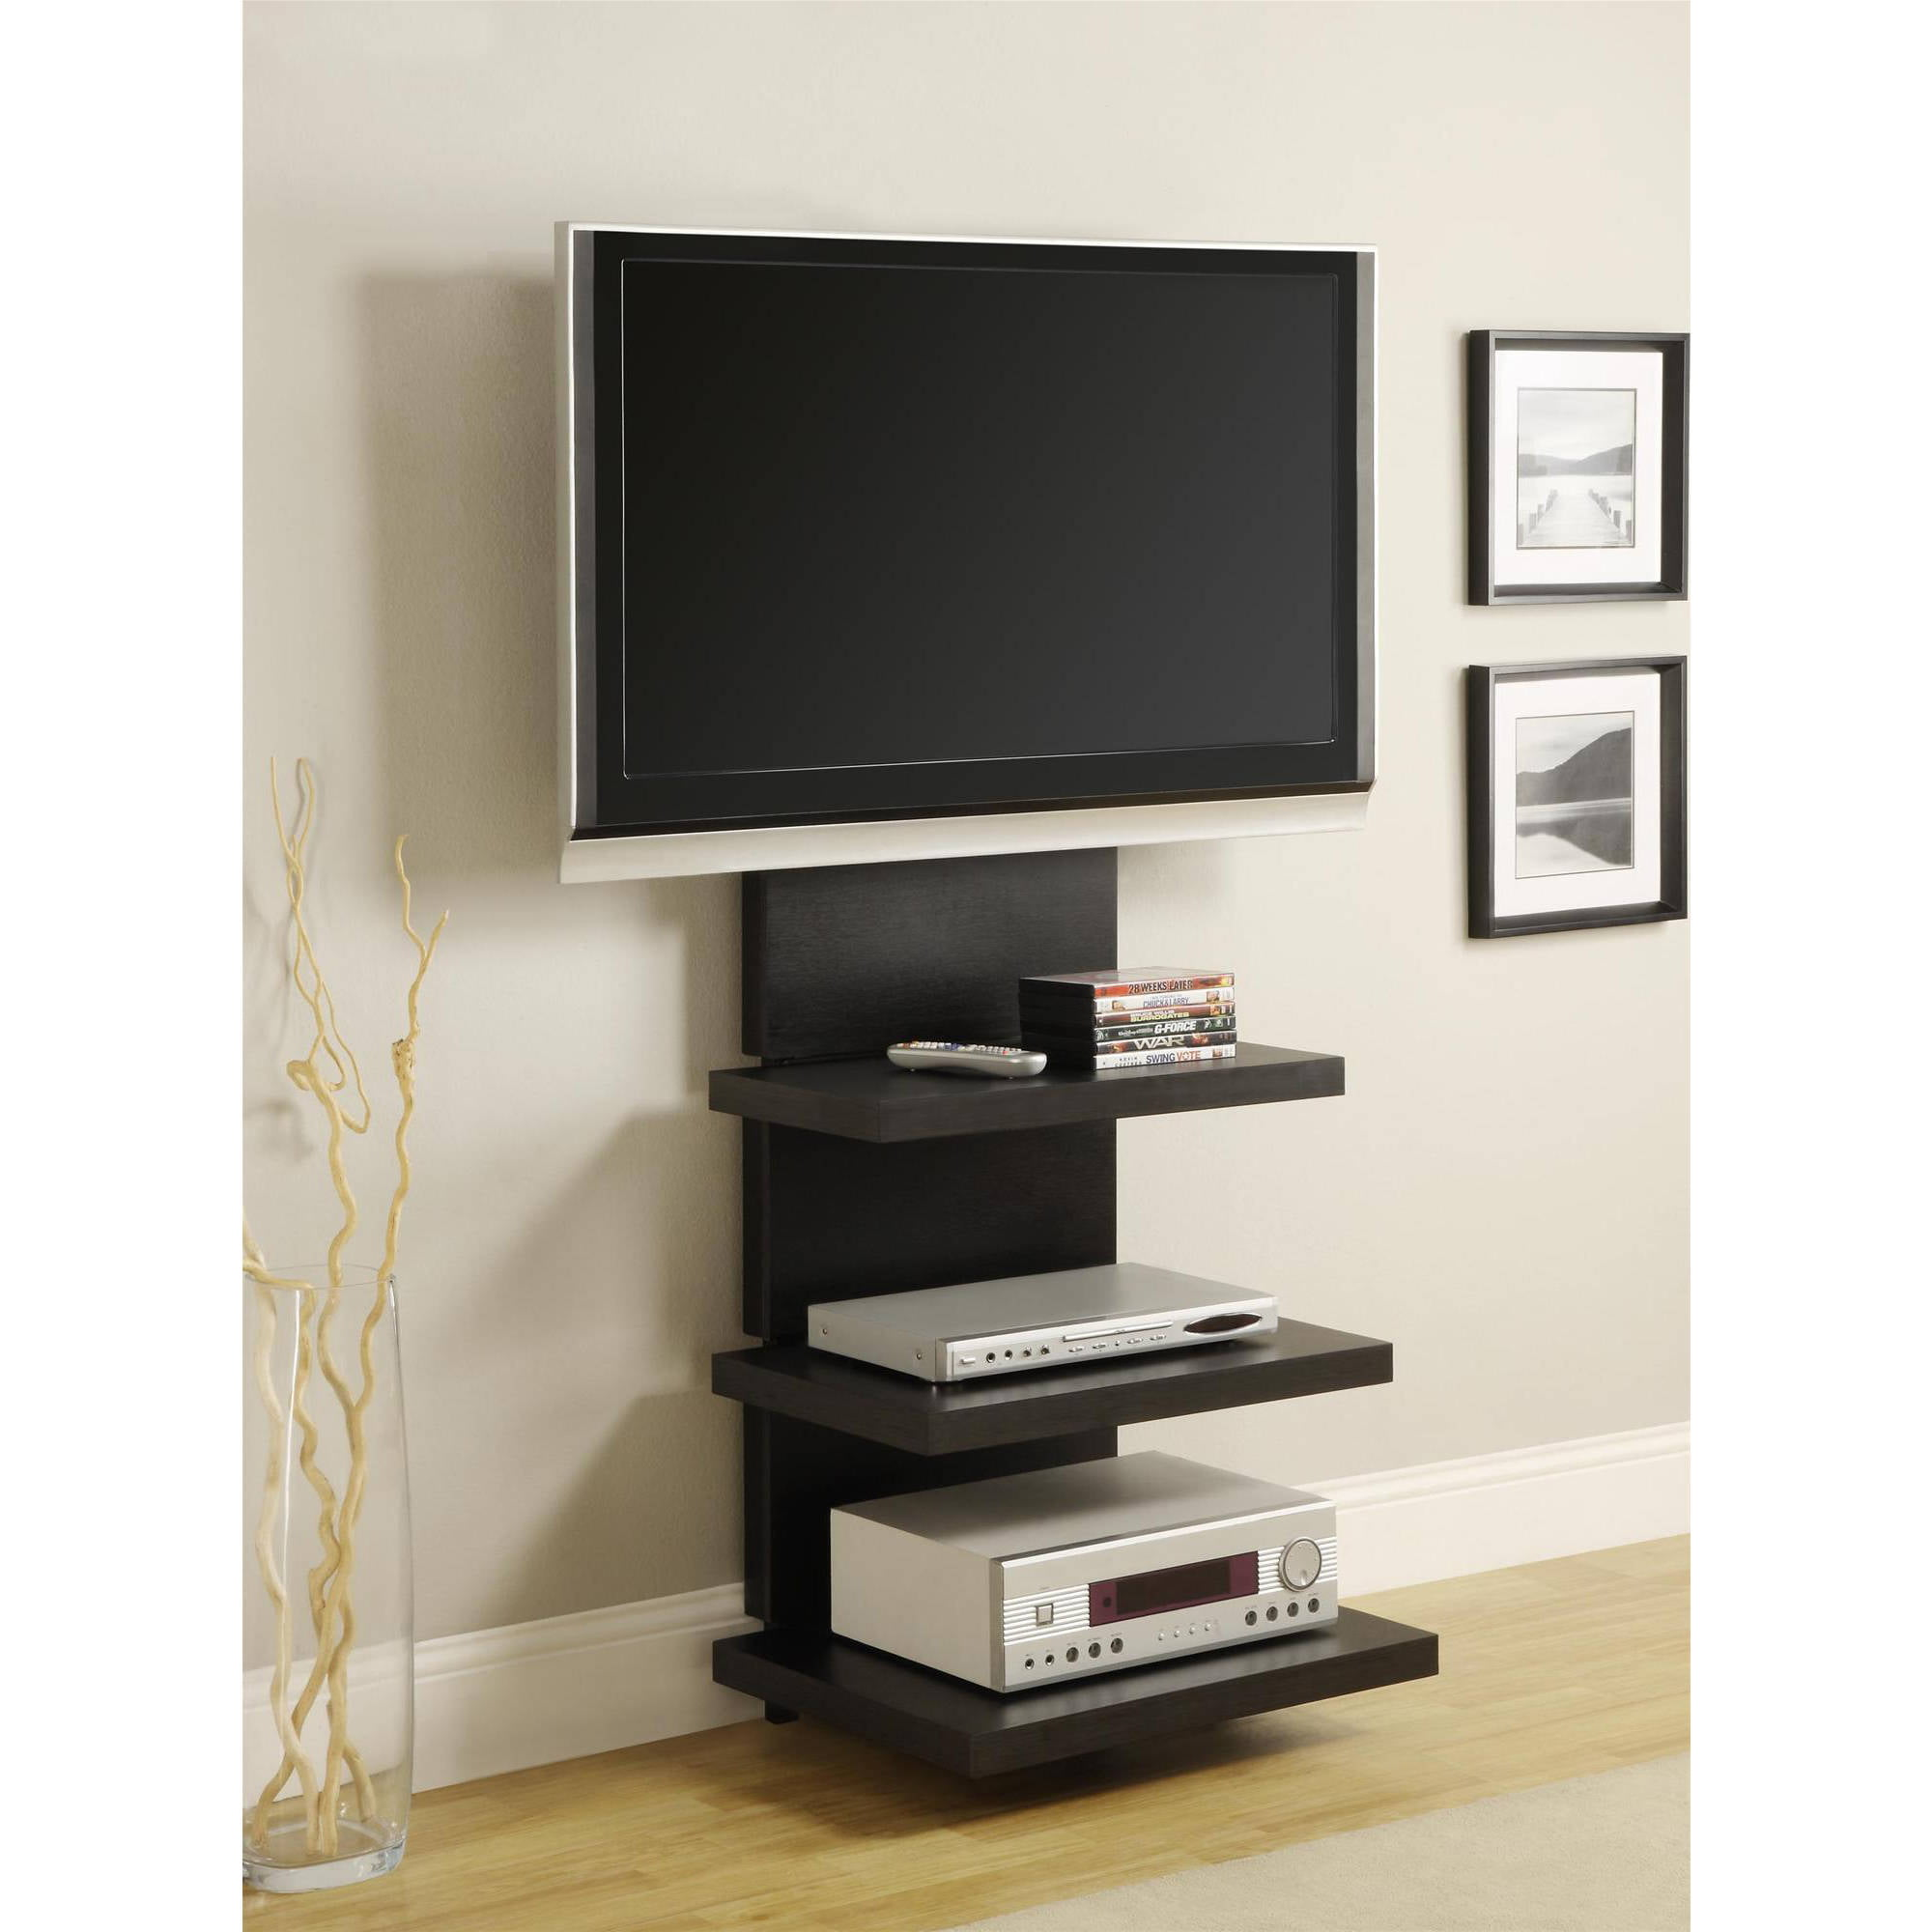 Ameriwood Home Elevation Altramount Tv Stand For Tvs Up To 60 Wide